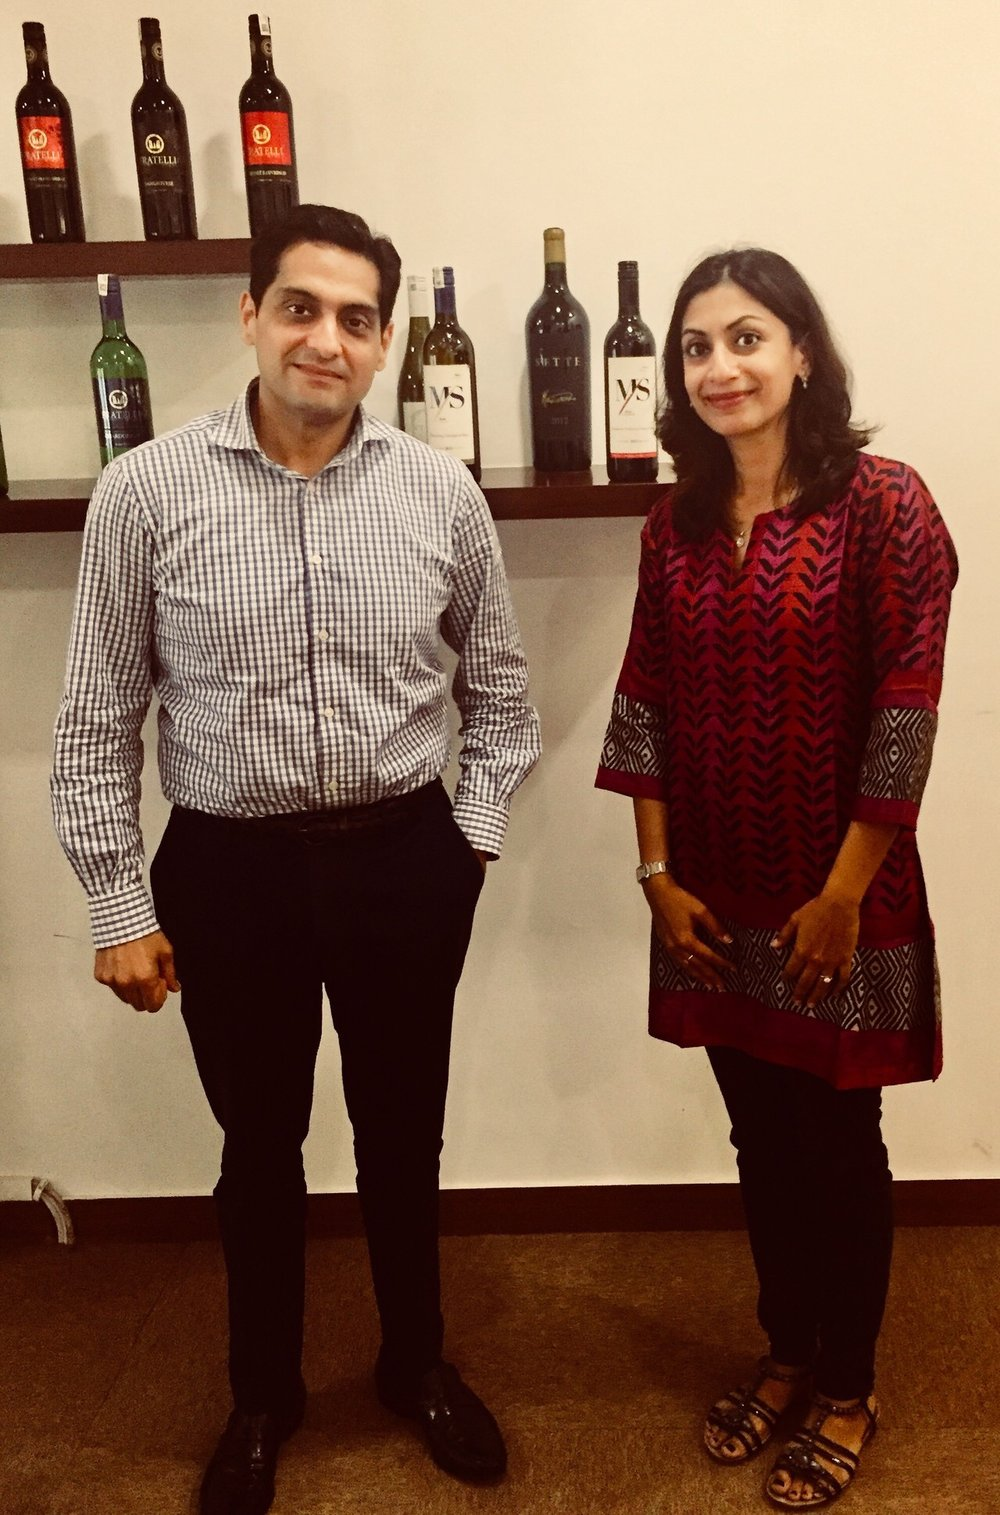 Sumi with Kapil Sekhri (Co-Founder of Fratelli). It is team spirit that is celebrated here. (Photo credit: Sumi Sarma)